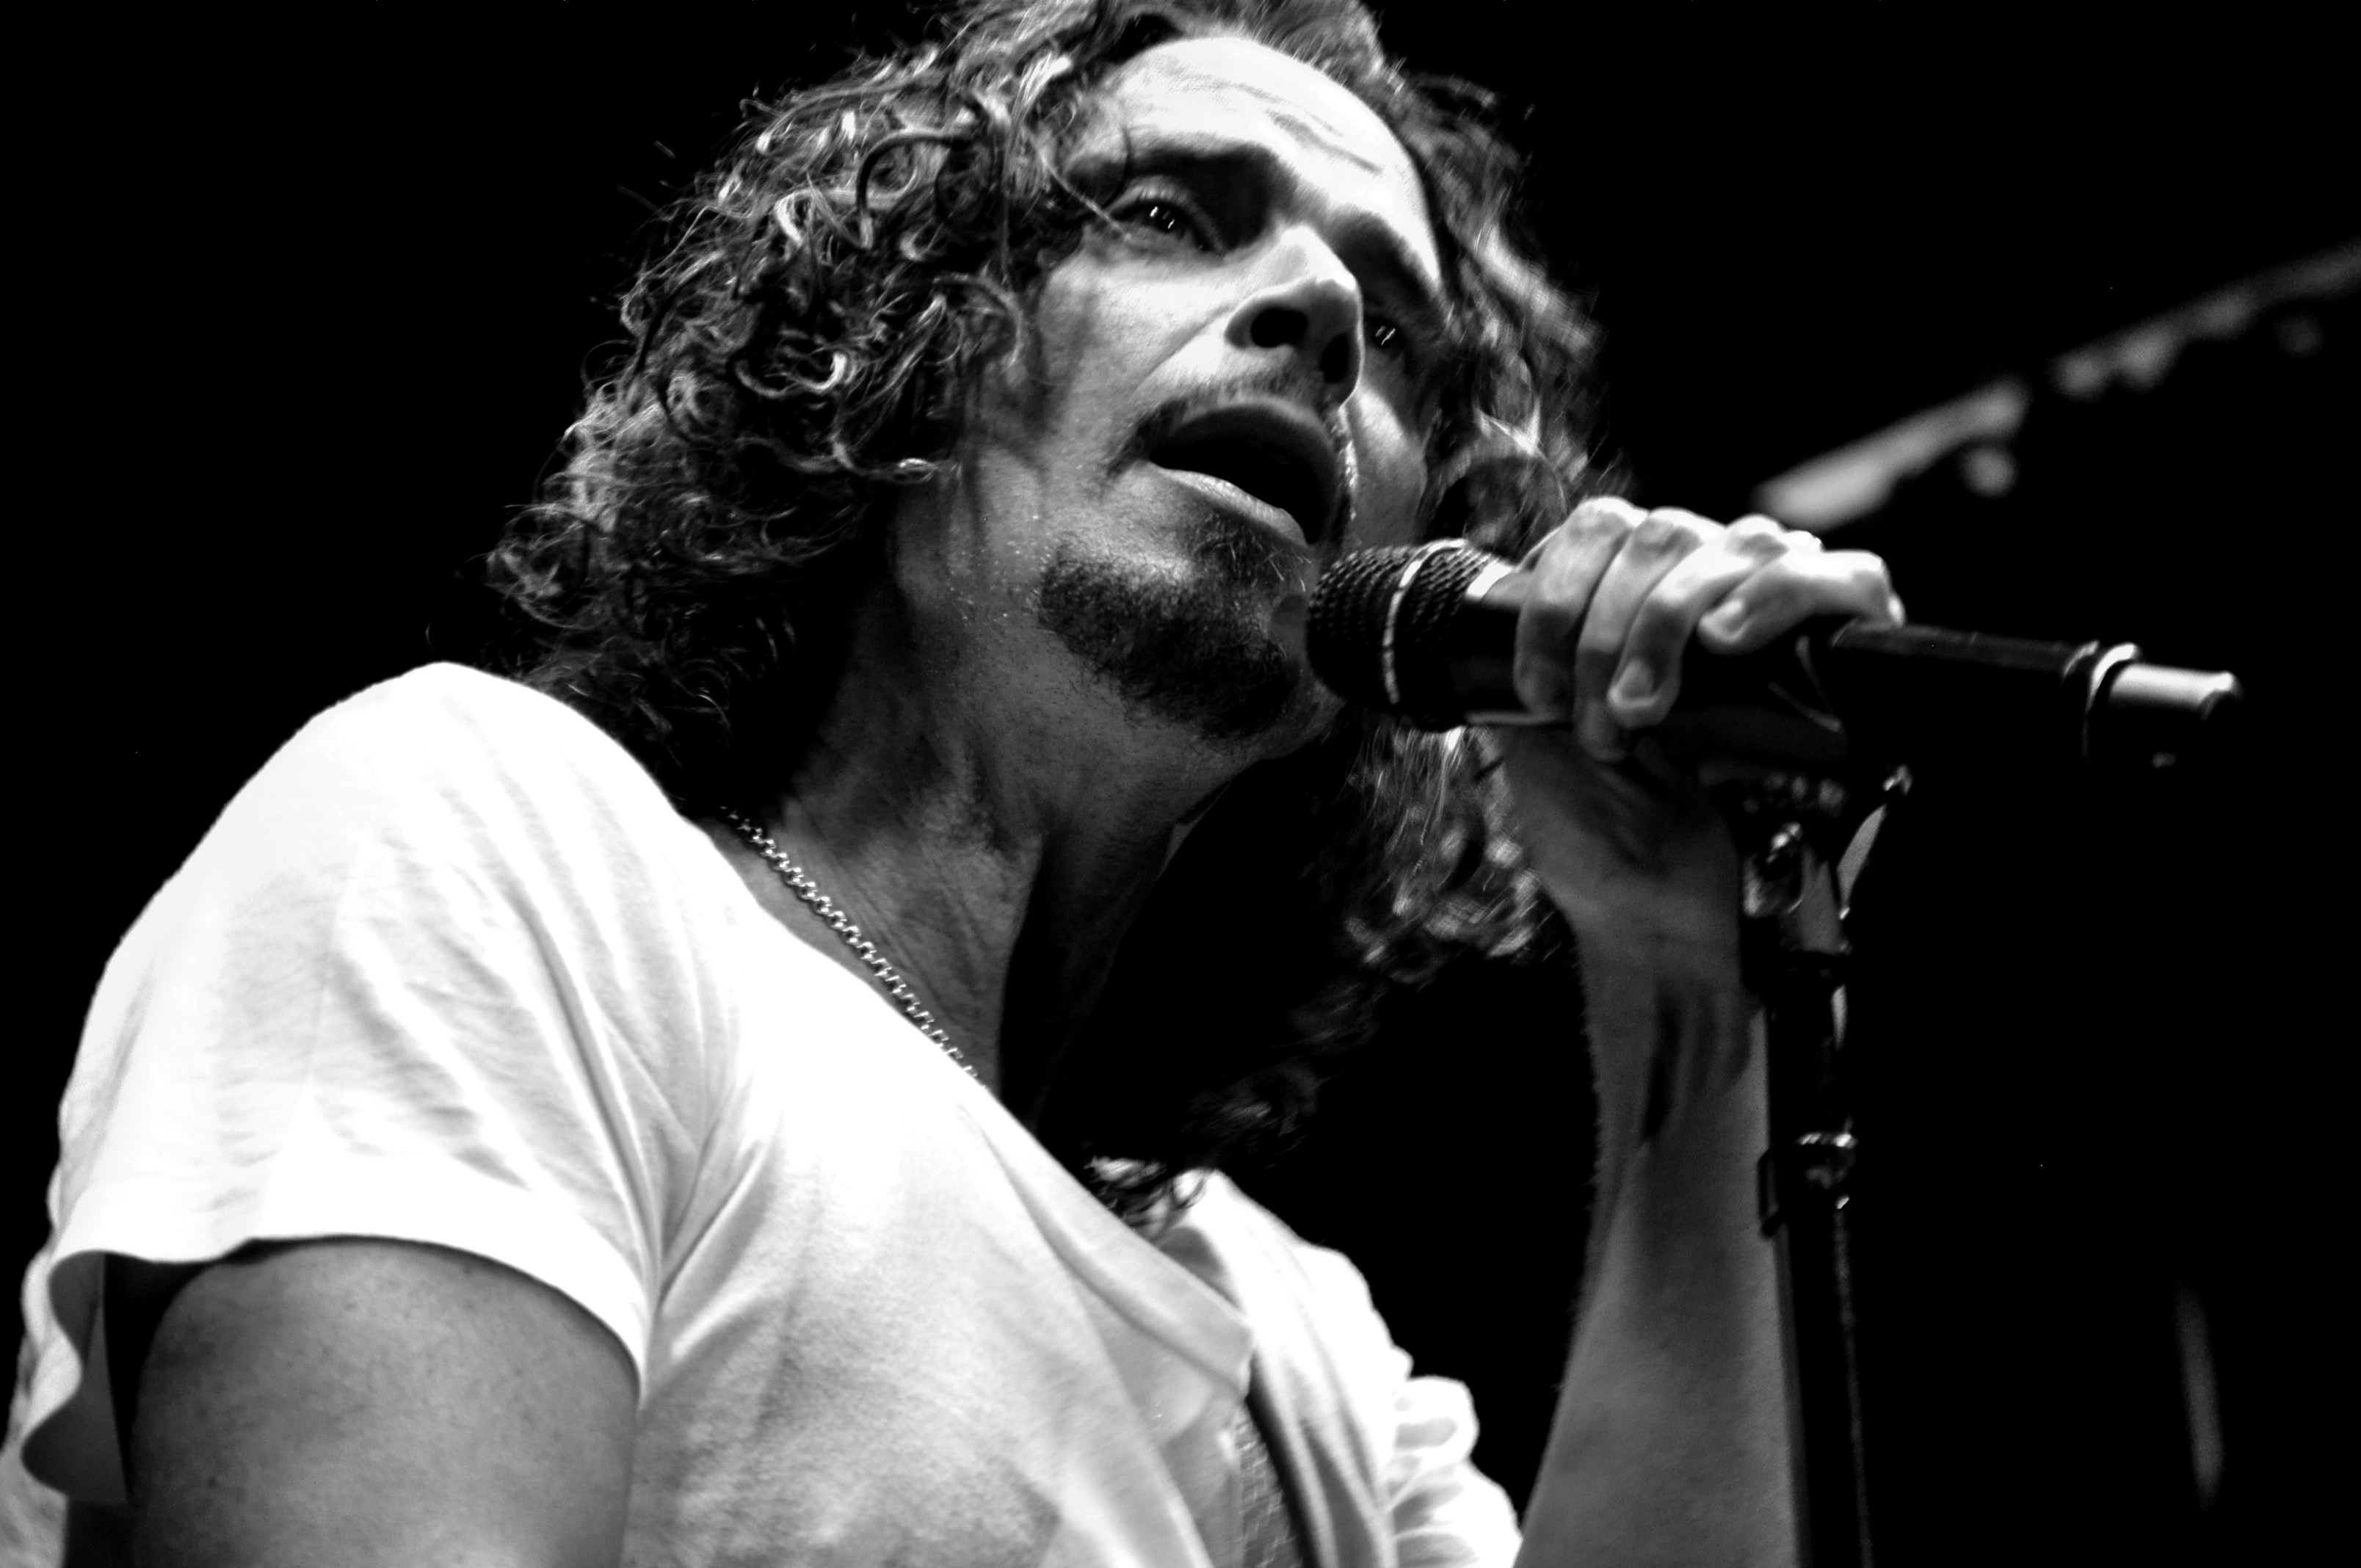 Soundgarden Announce Spring 2017 Tour with Openers The Pretty Reckless and The Dillinger Escape Plan